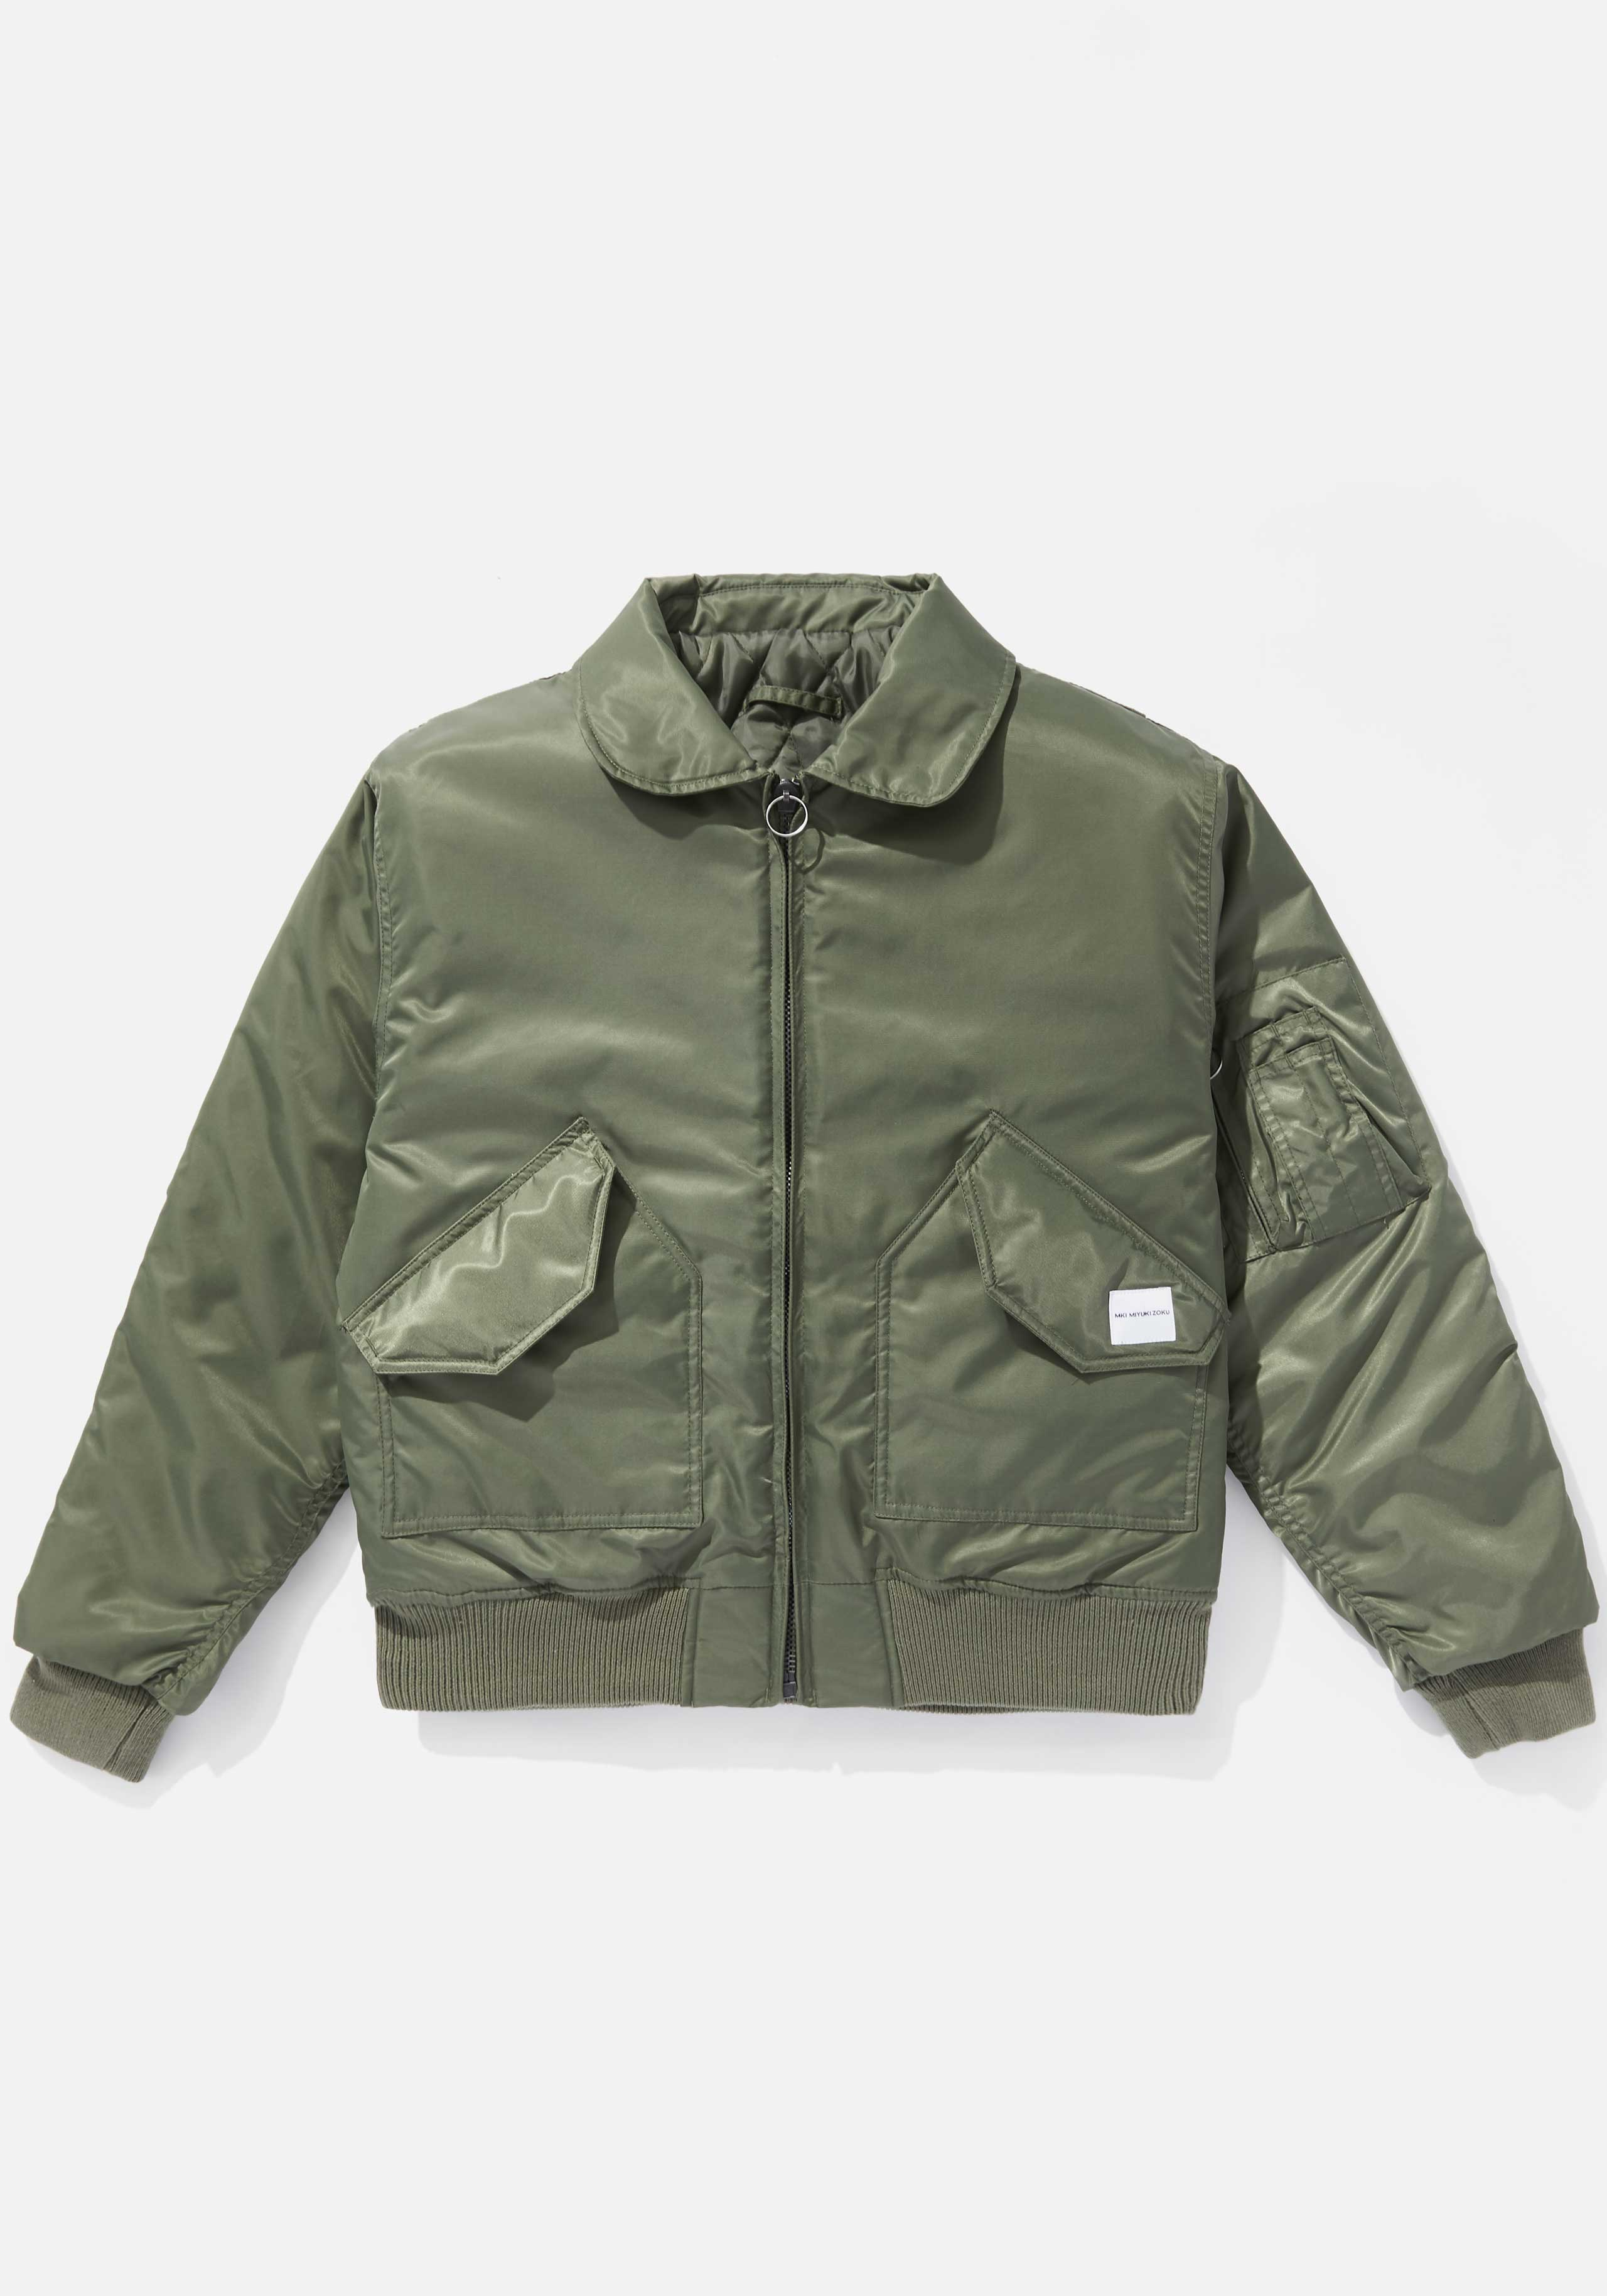 mki ma2 flight jacket 1